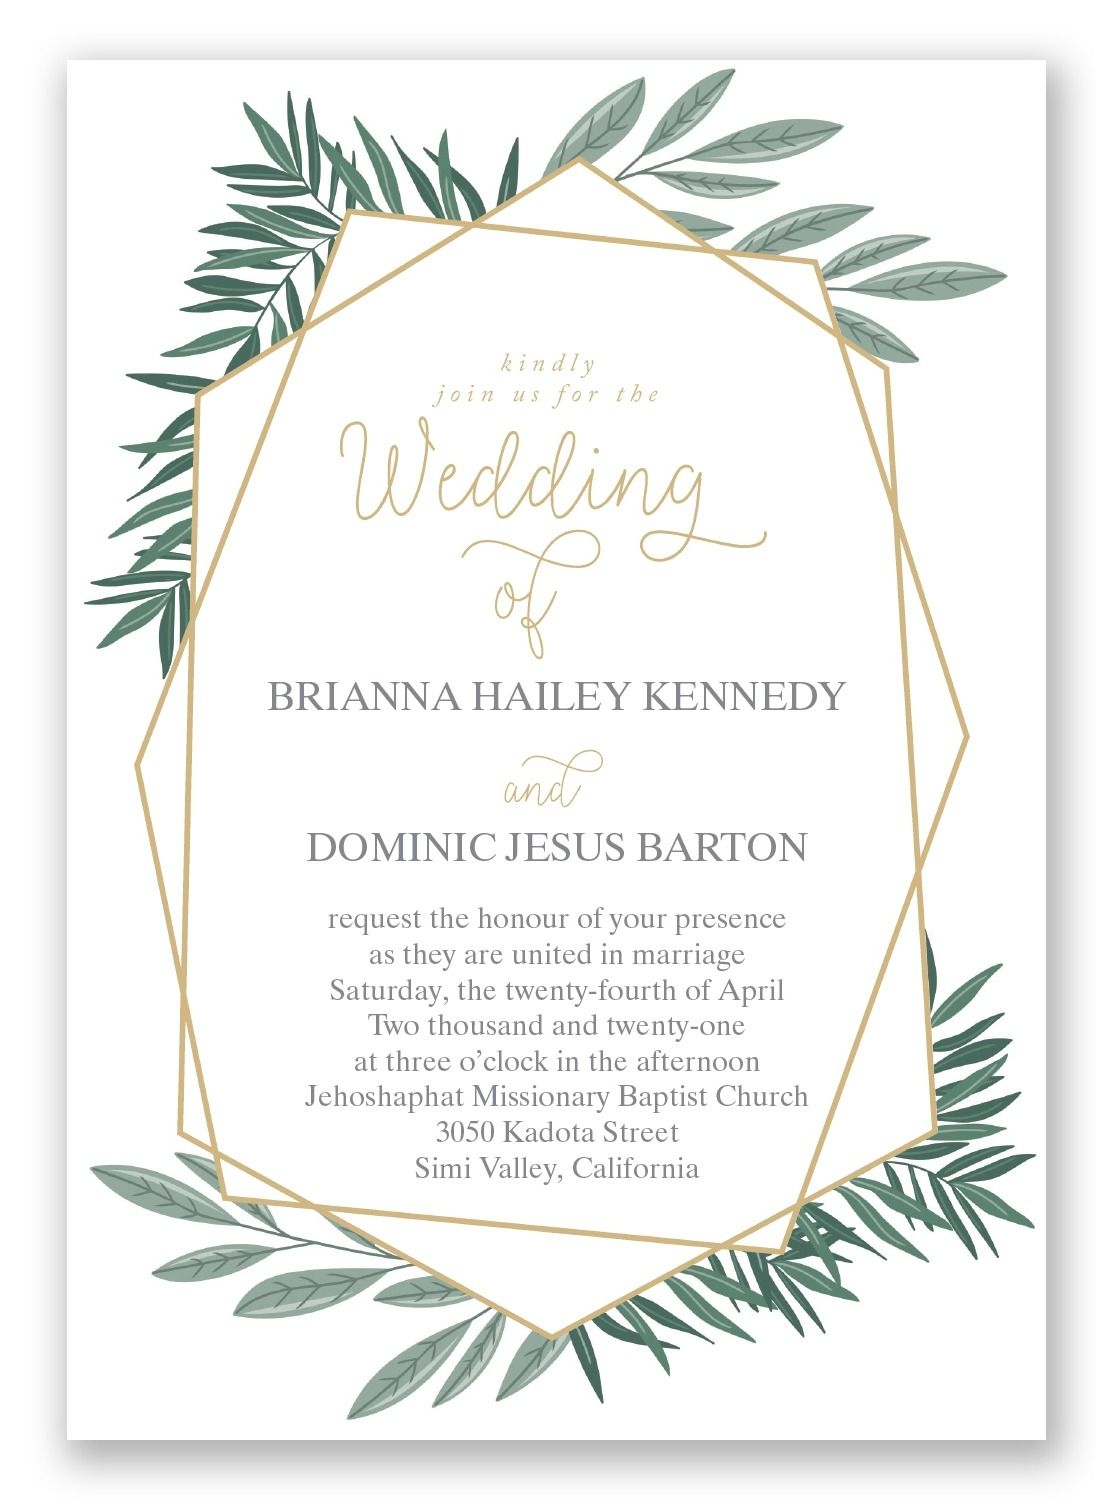 Opulent Lines wedding invitation by Invitations by Davids Bridal